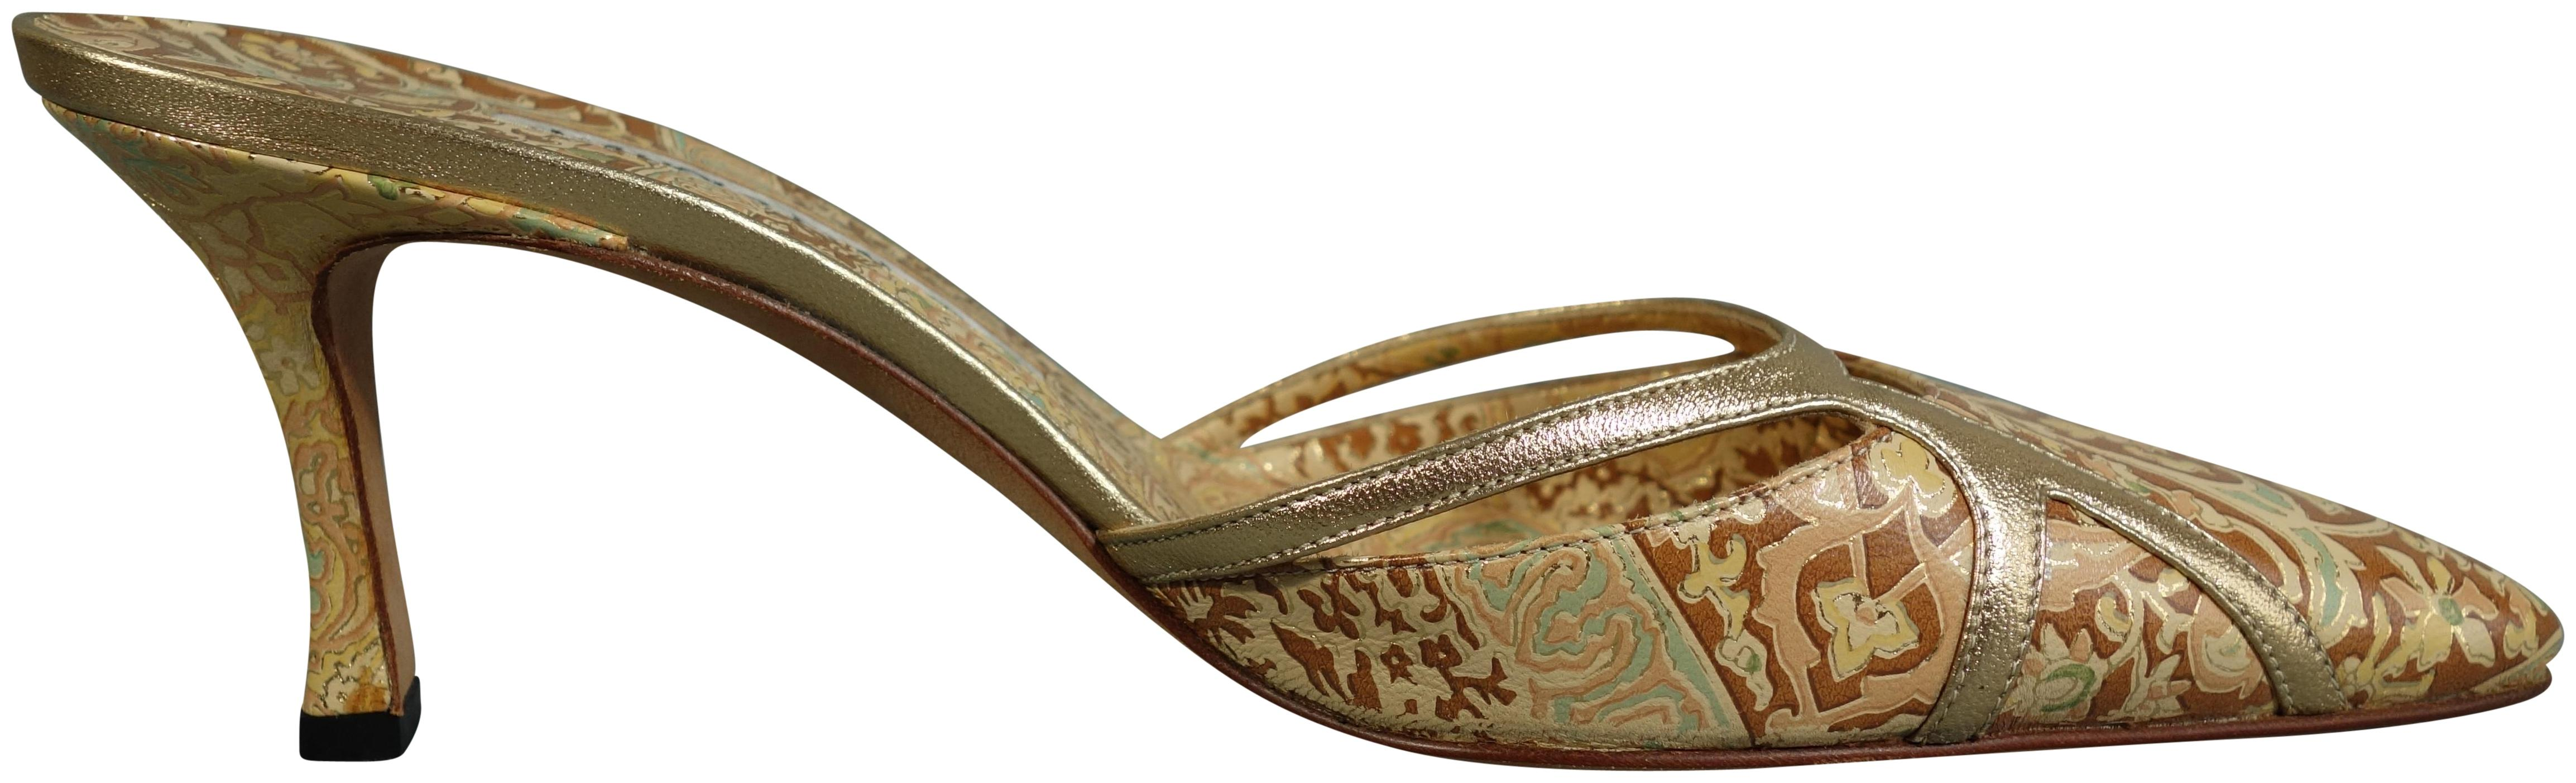 Manolo Blahnik Gold Metallic Brocade Embroidery Flower Print Pump Mules/Slides Size EU 37 (Approx. US 7) Regular (M, B)